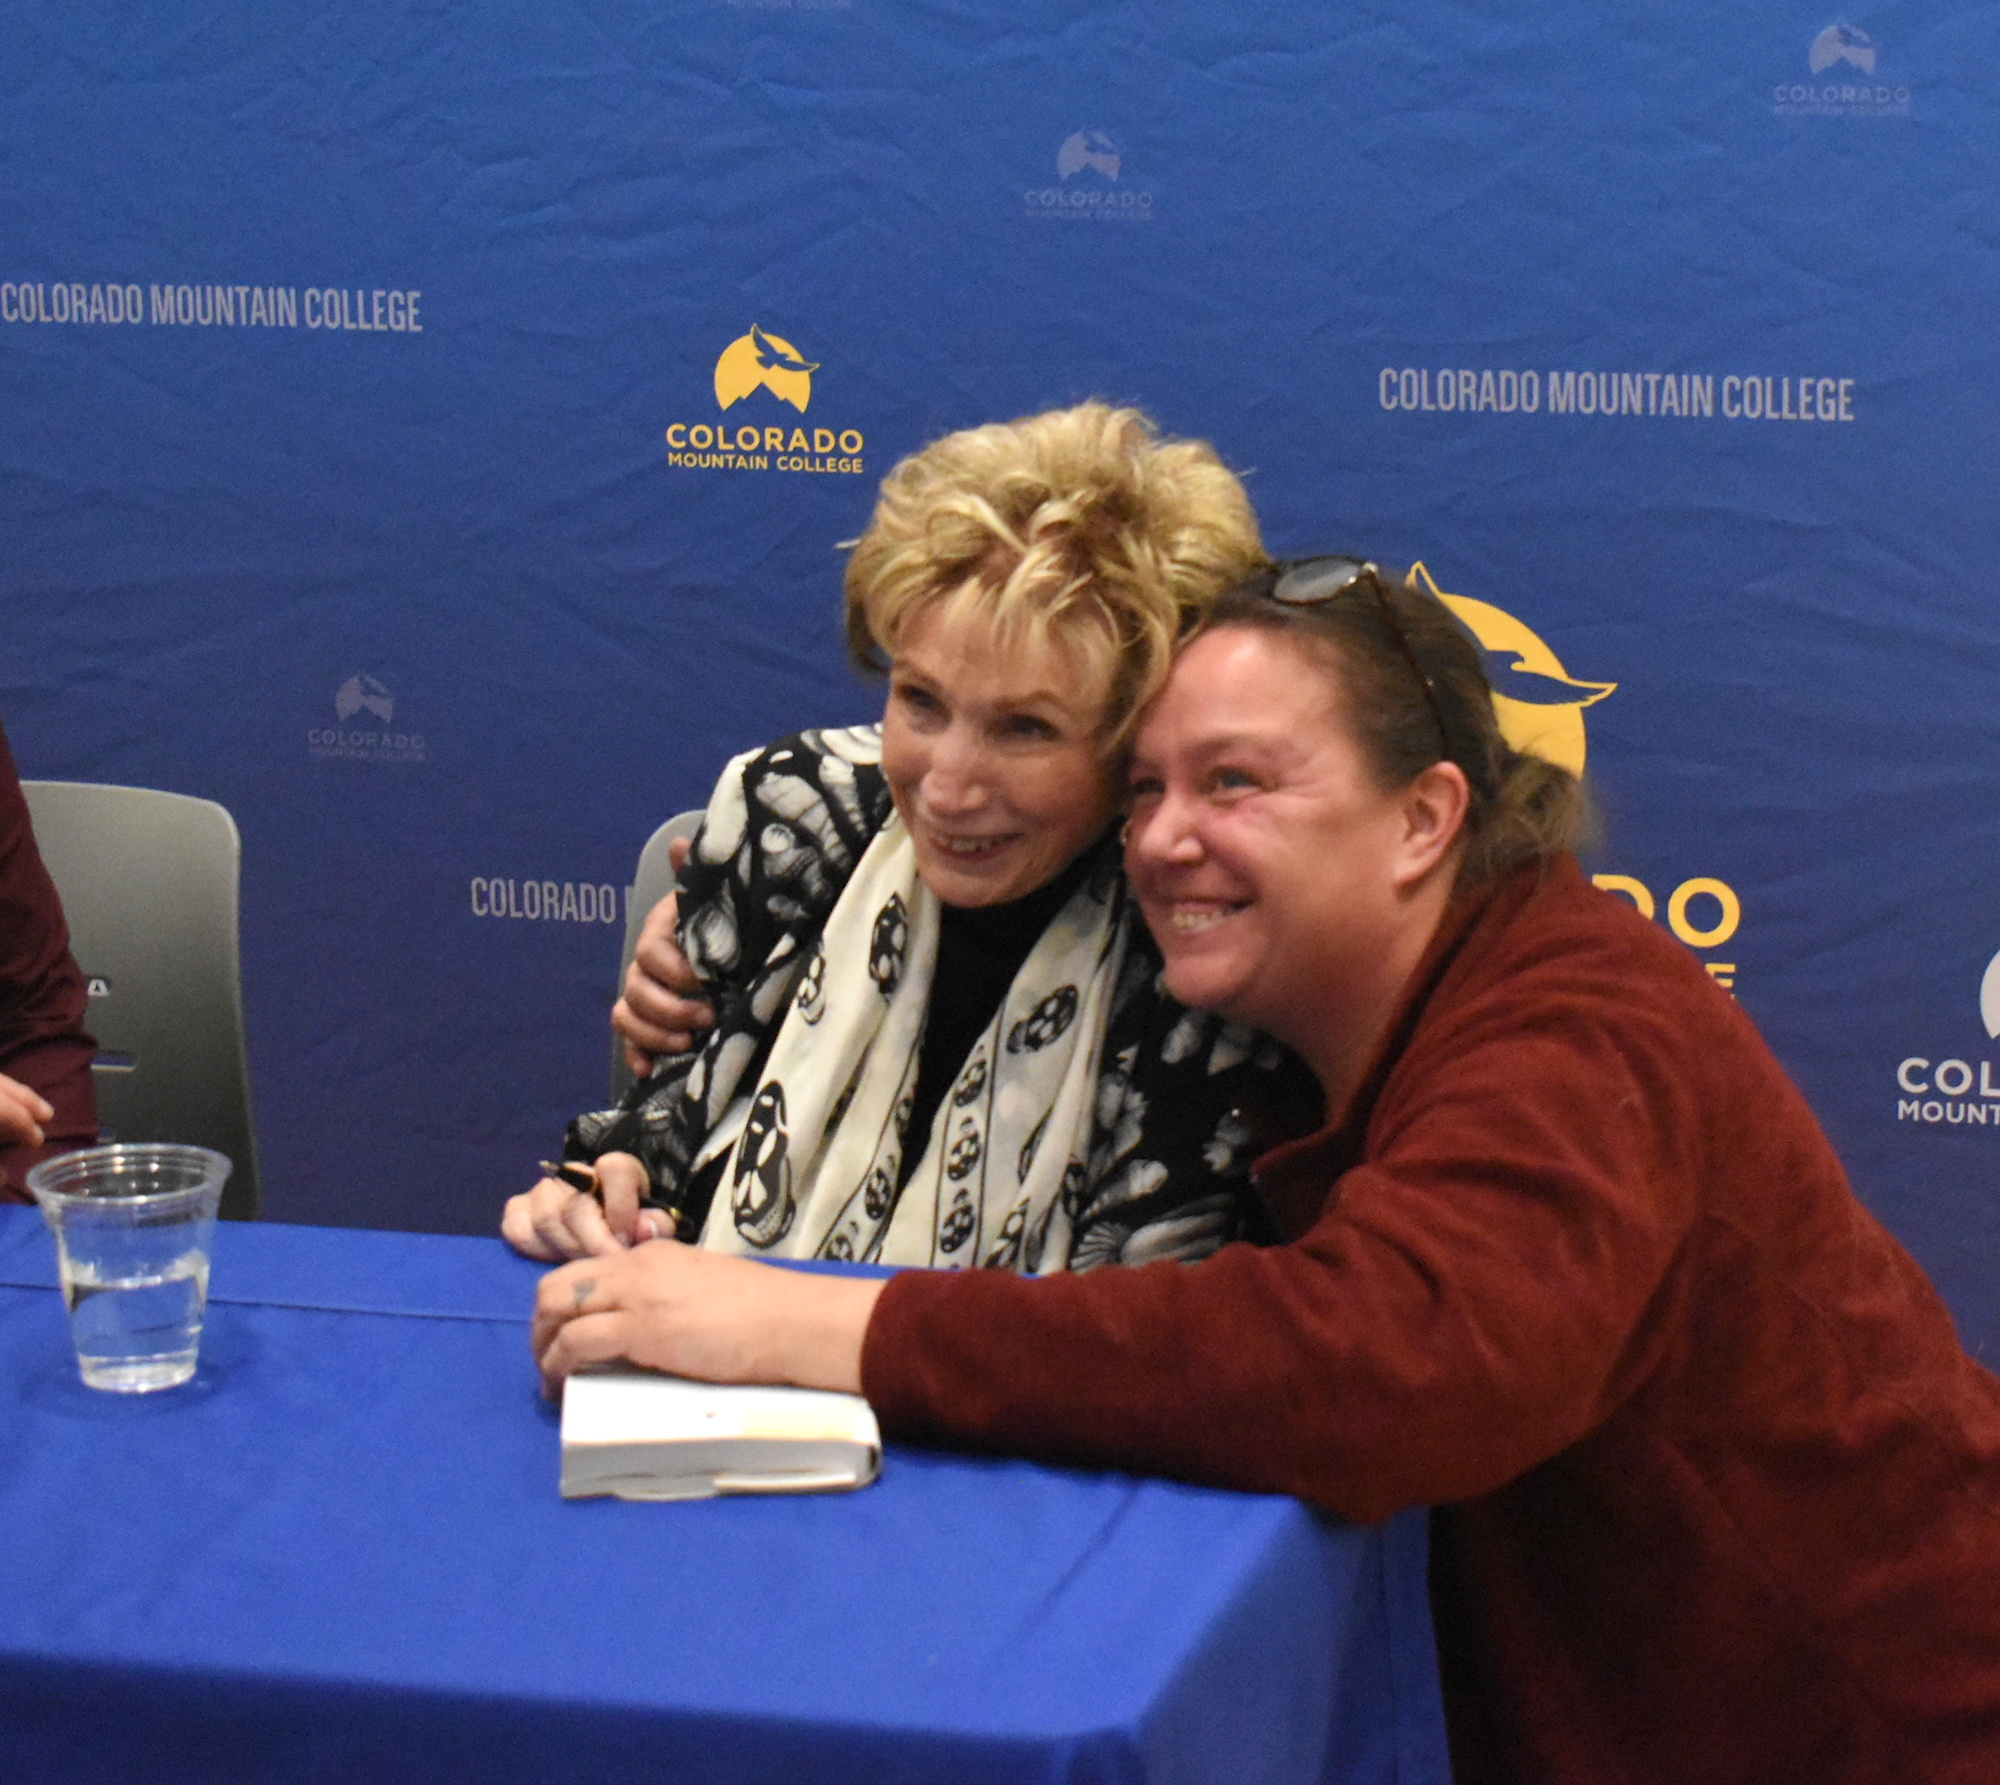 Edith Eger delivers message of resilience to CMC audience